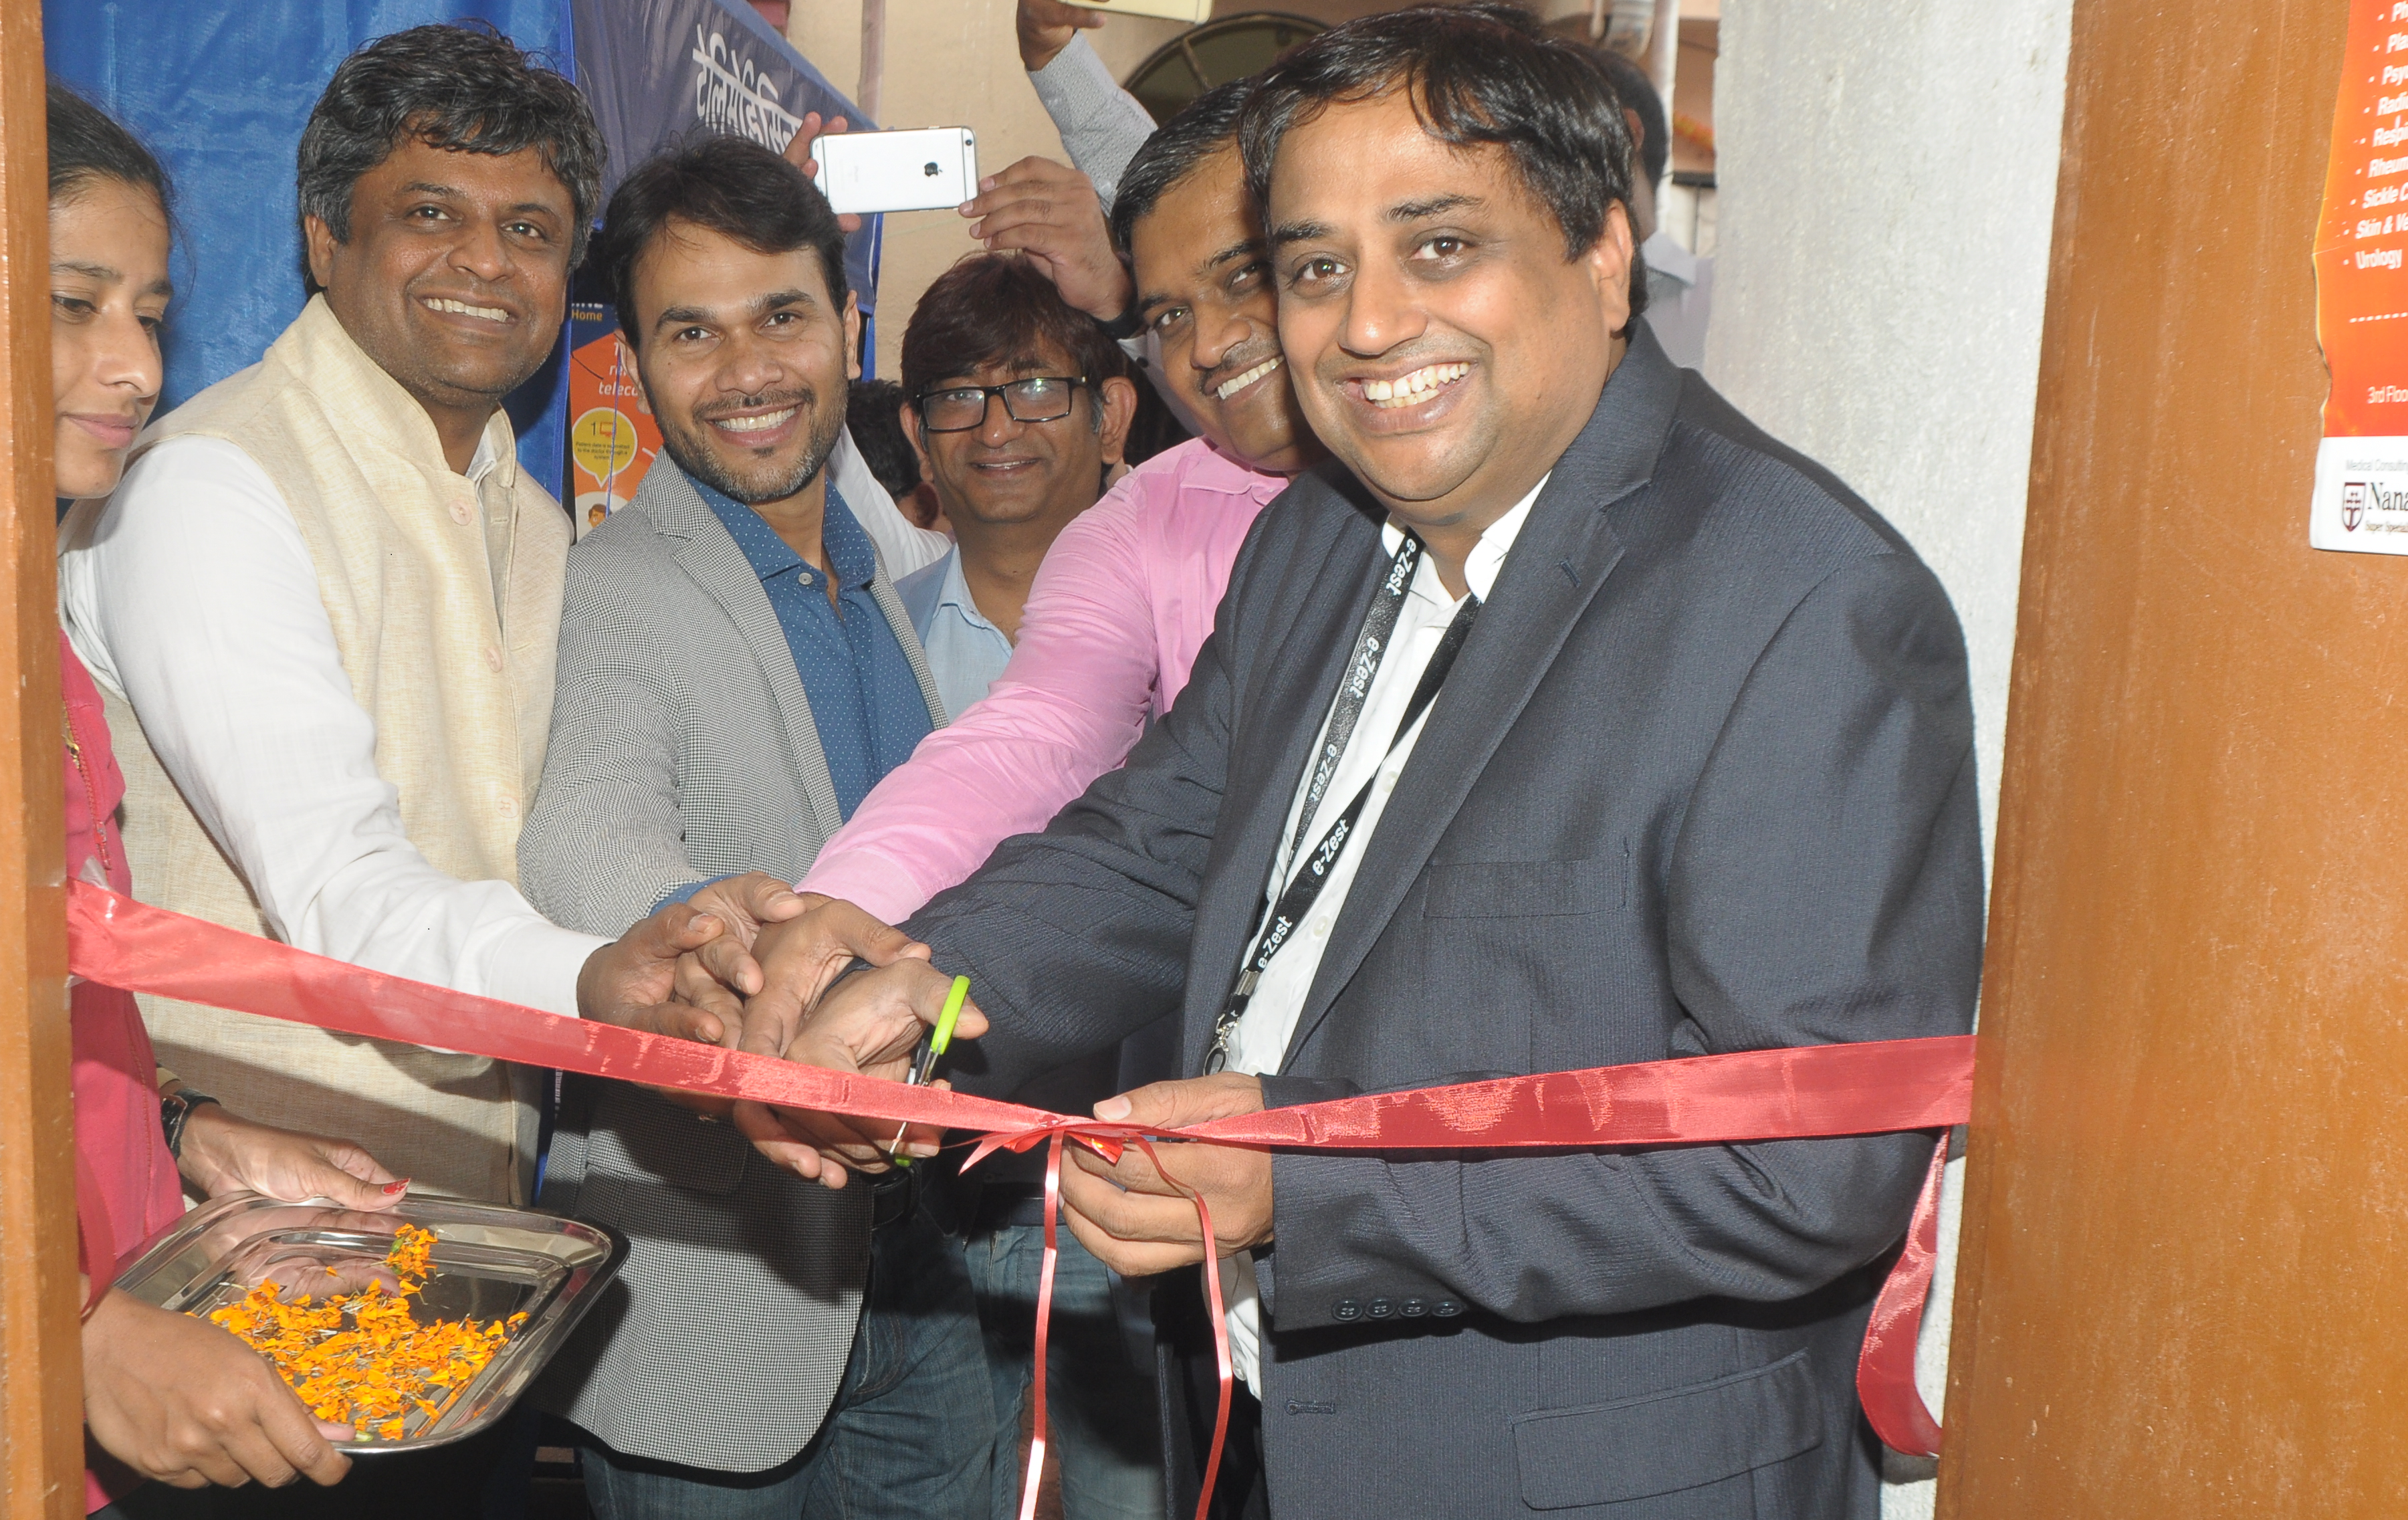 Devendra Deshmukh, CEO and Founder- e-Zest, along with the team inaugurating the facility at Dapodi-1